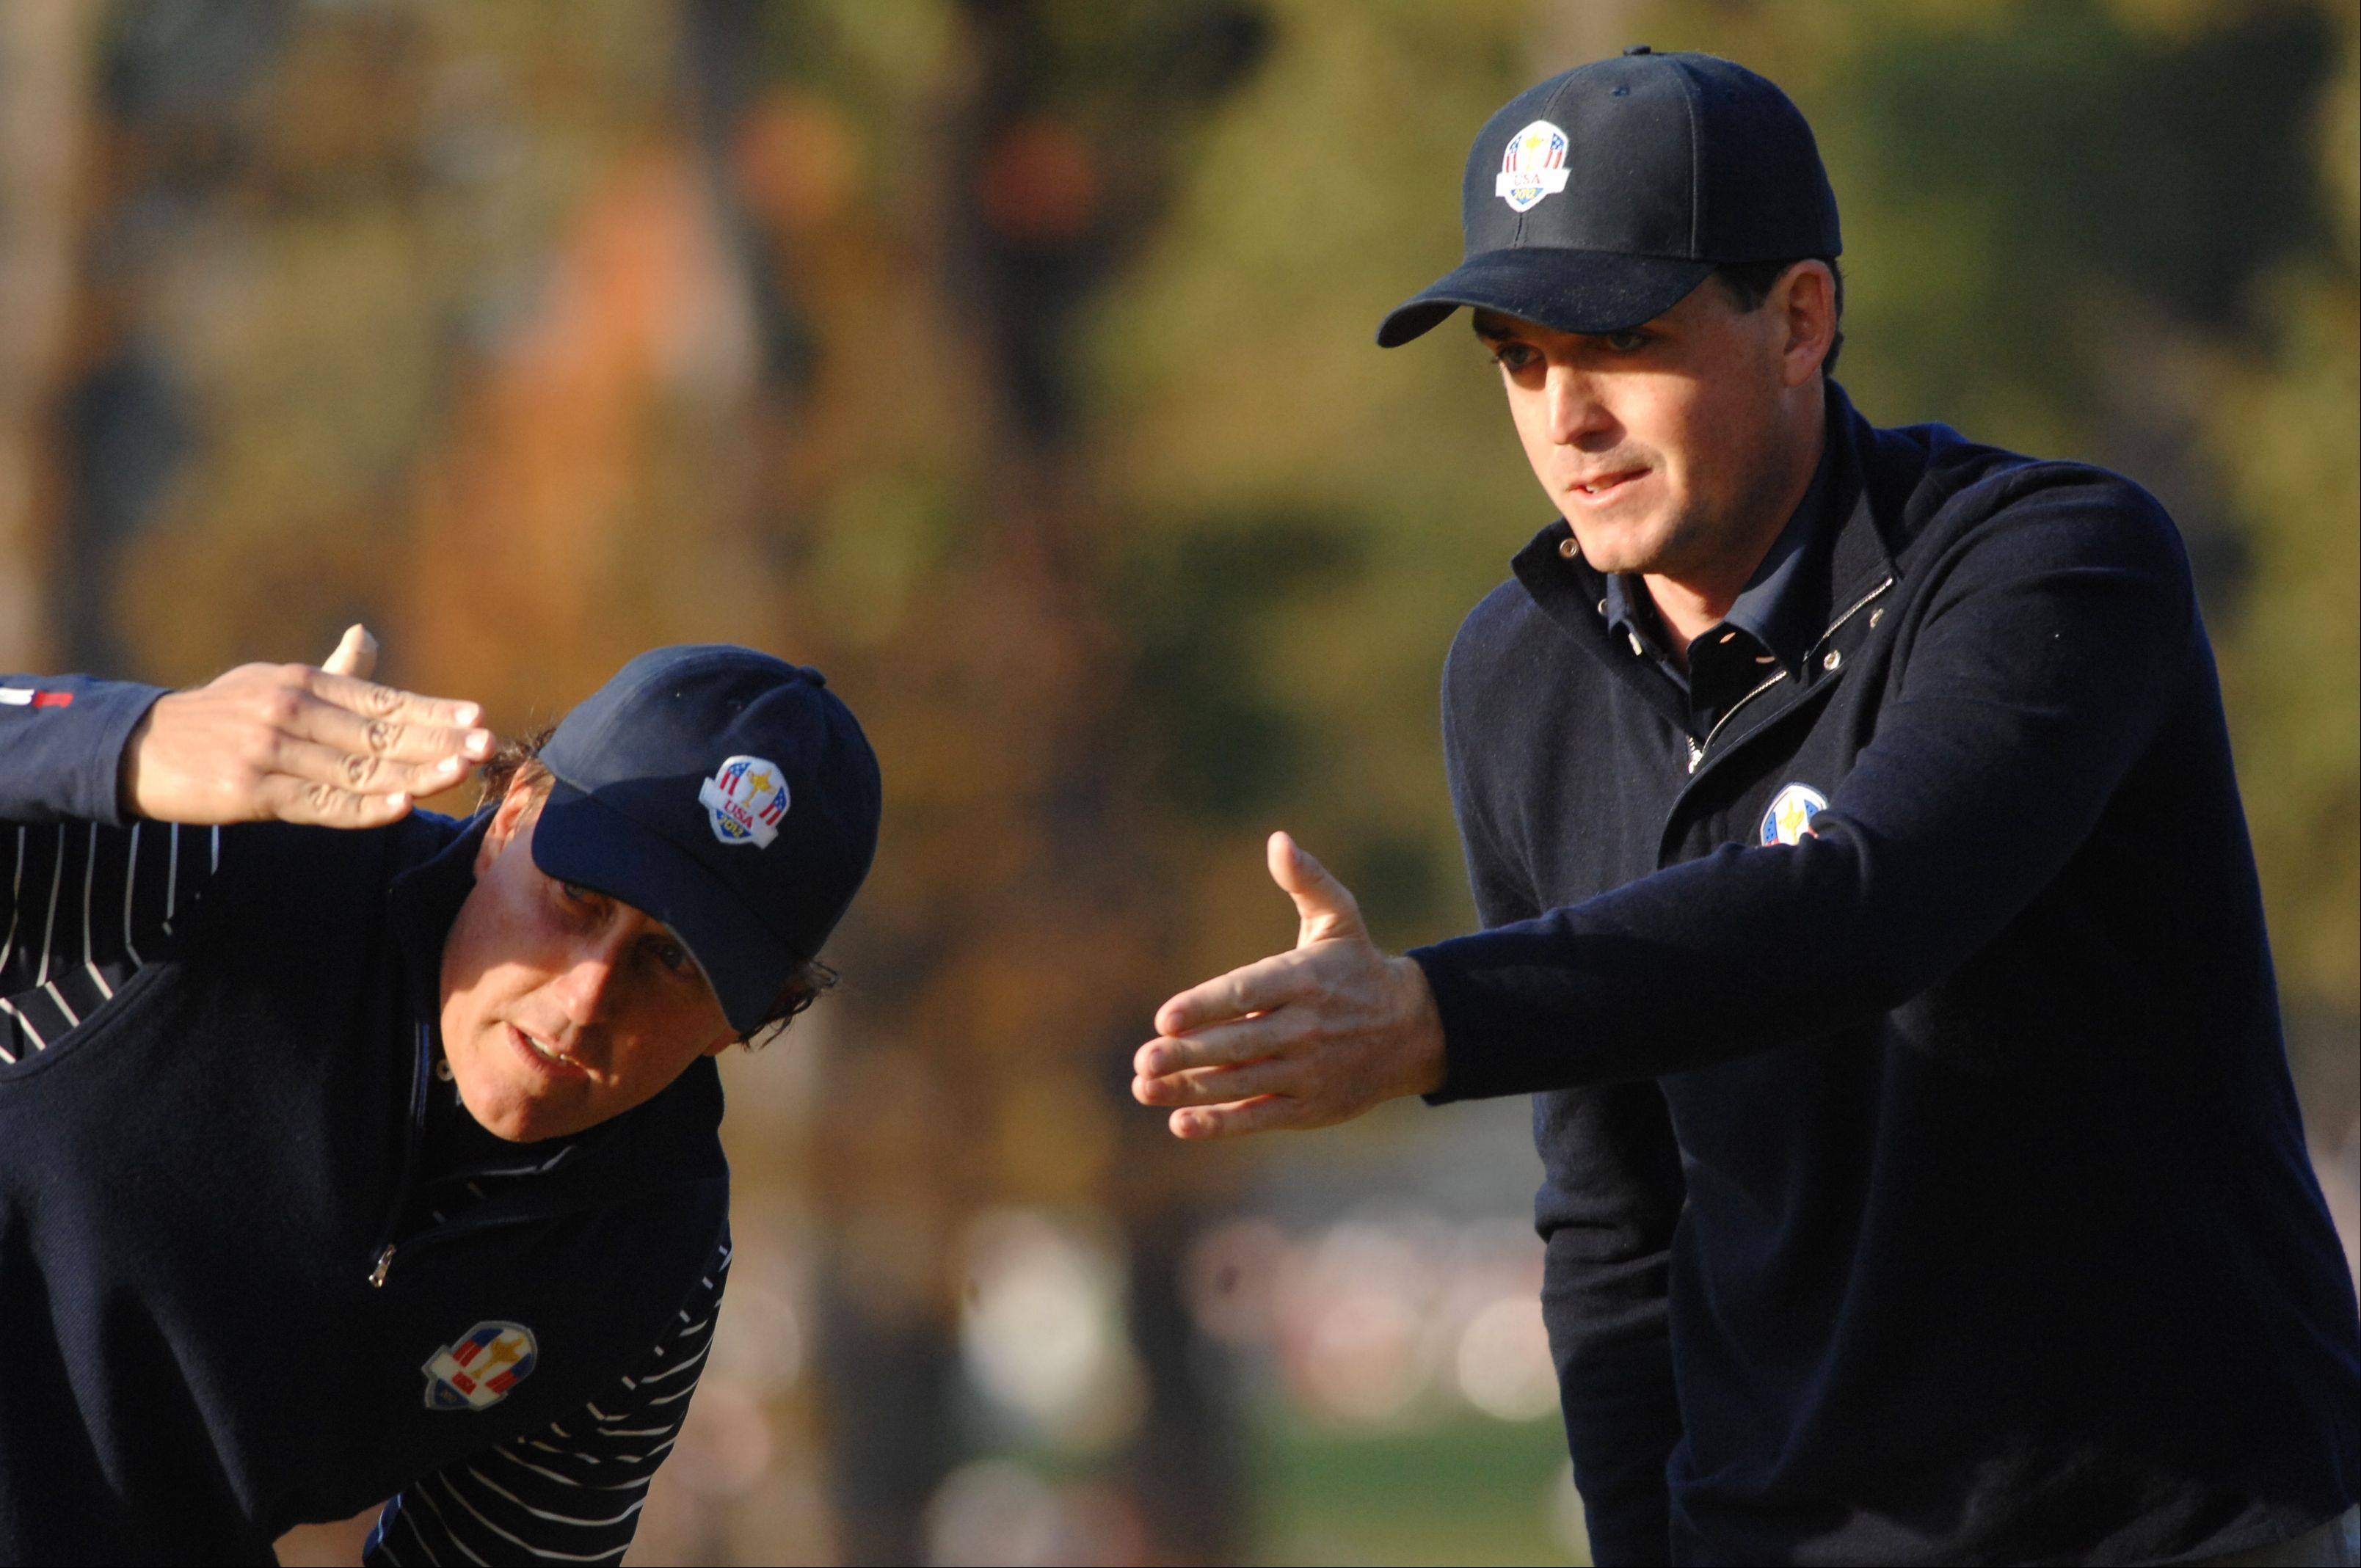 Keegan Bradley, right, and playing partner Phil Mickelson work on lining up a putt on the 4th hole Saturday morning during day 2 of the 2012 Ryder Cup at Medinah Country Club.